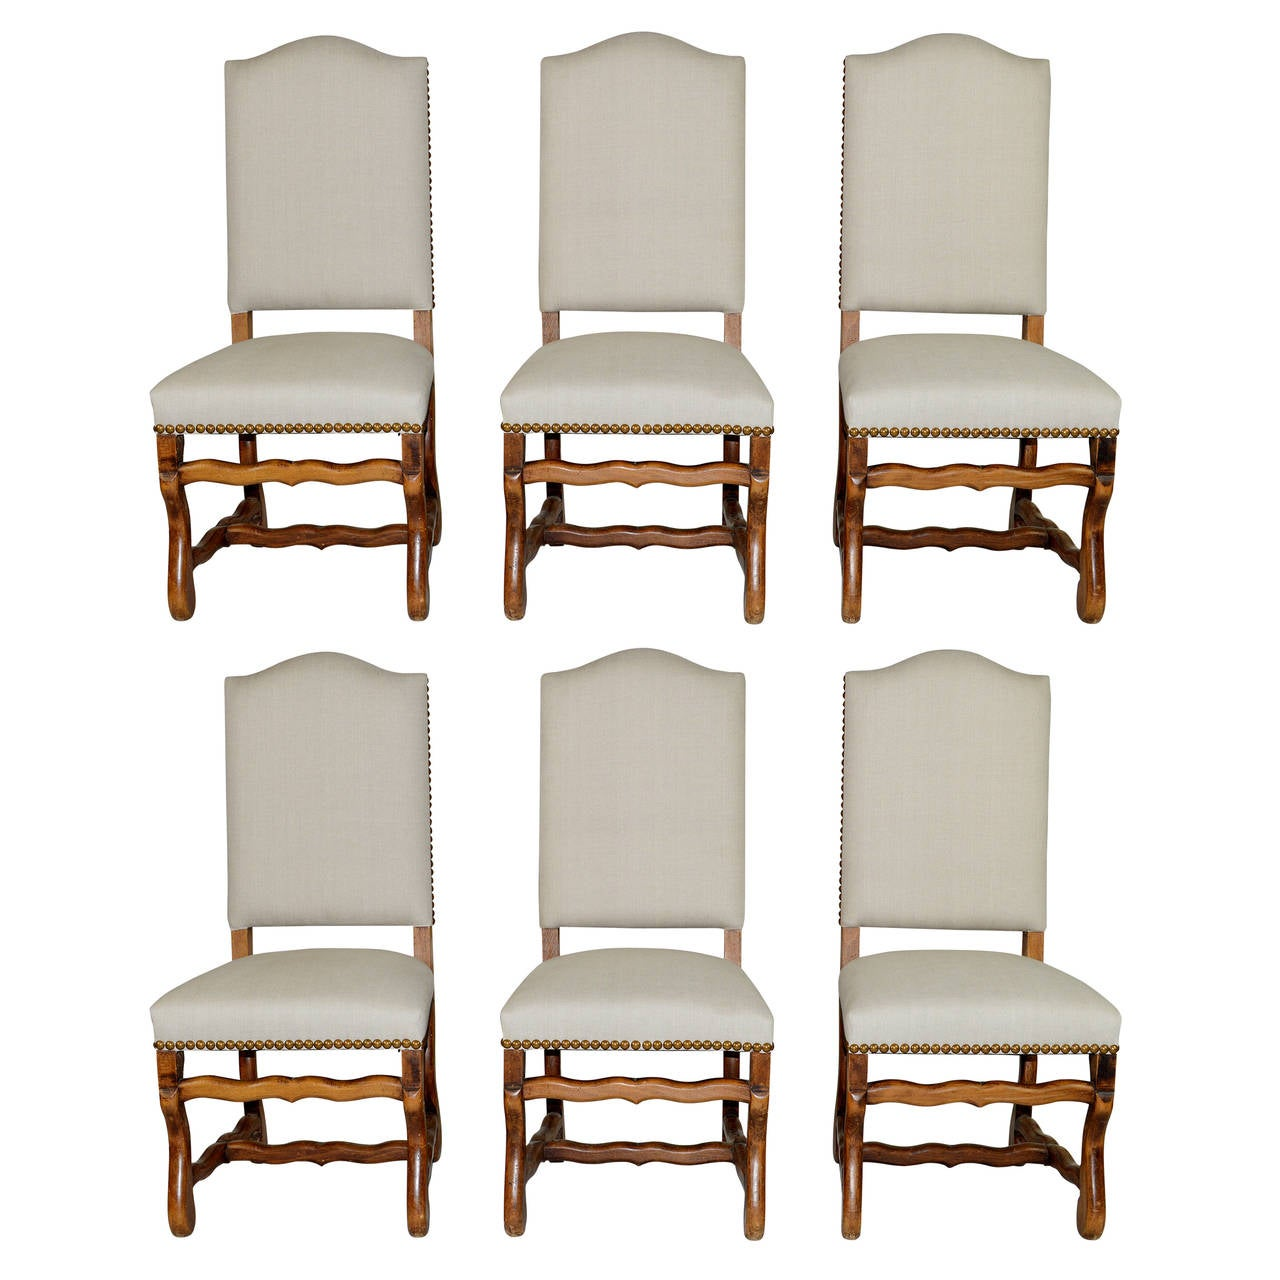 Set of six french louis xiv style dining chairs at 1stdibs for Dining room chairs set of 6